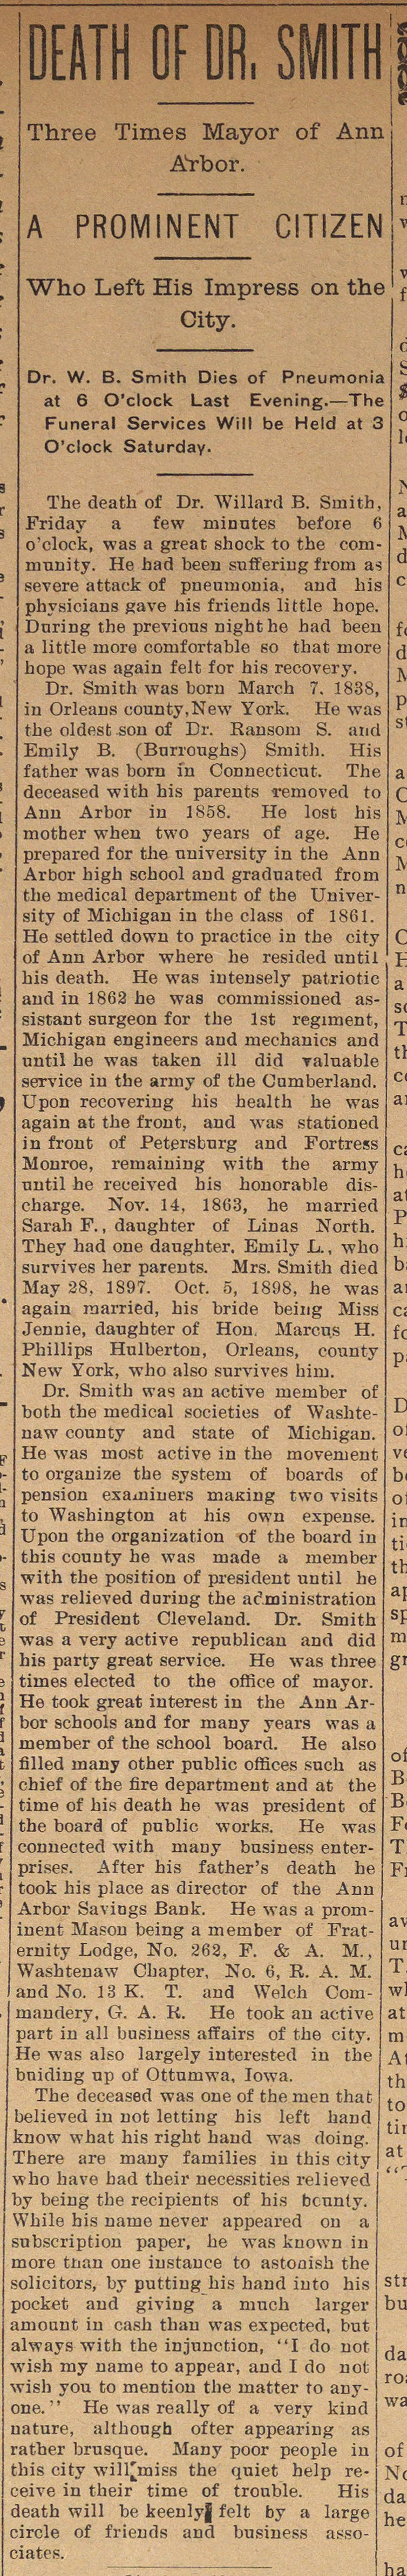 Death Of Dr. Smith image